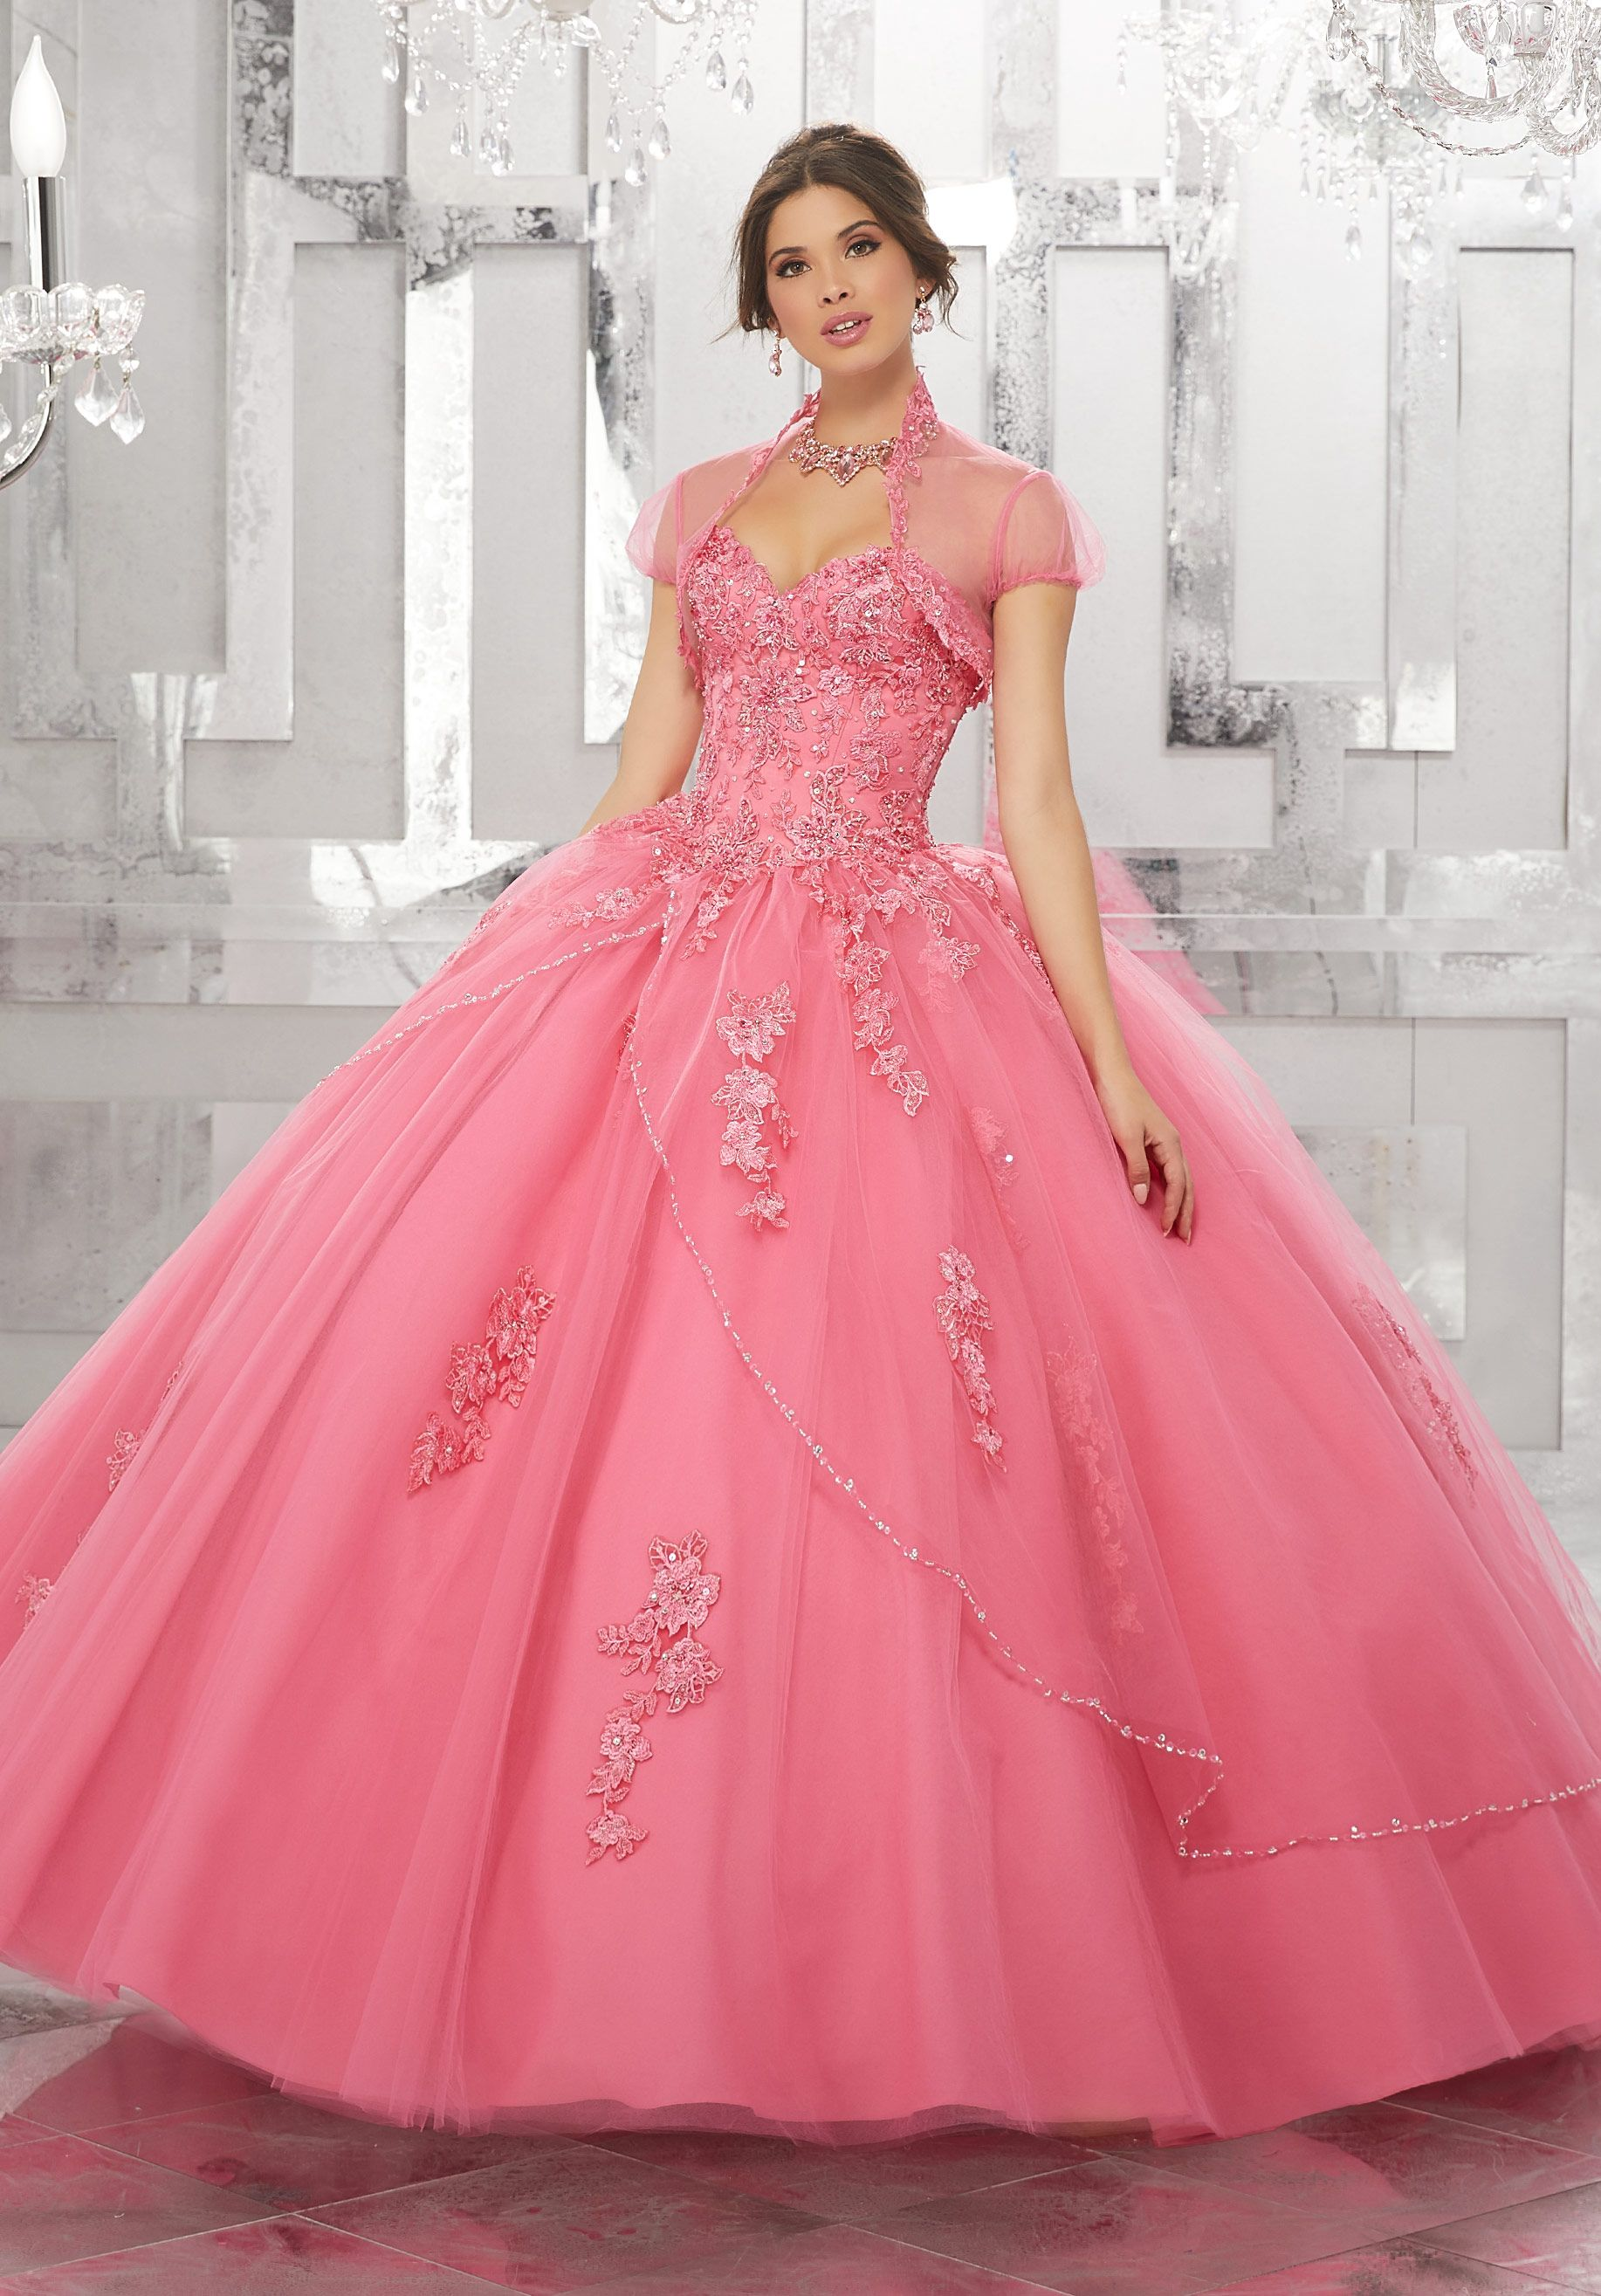 Princess Perfect, This Tulle Quinceañera Ballgown with Beaded Apron ...